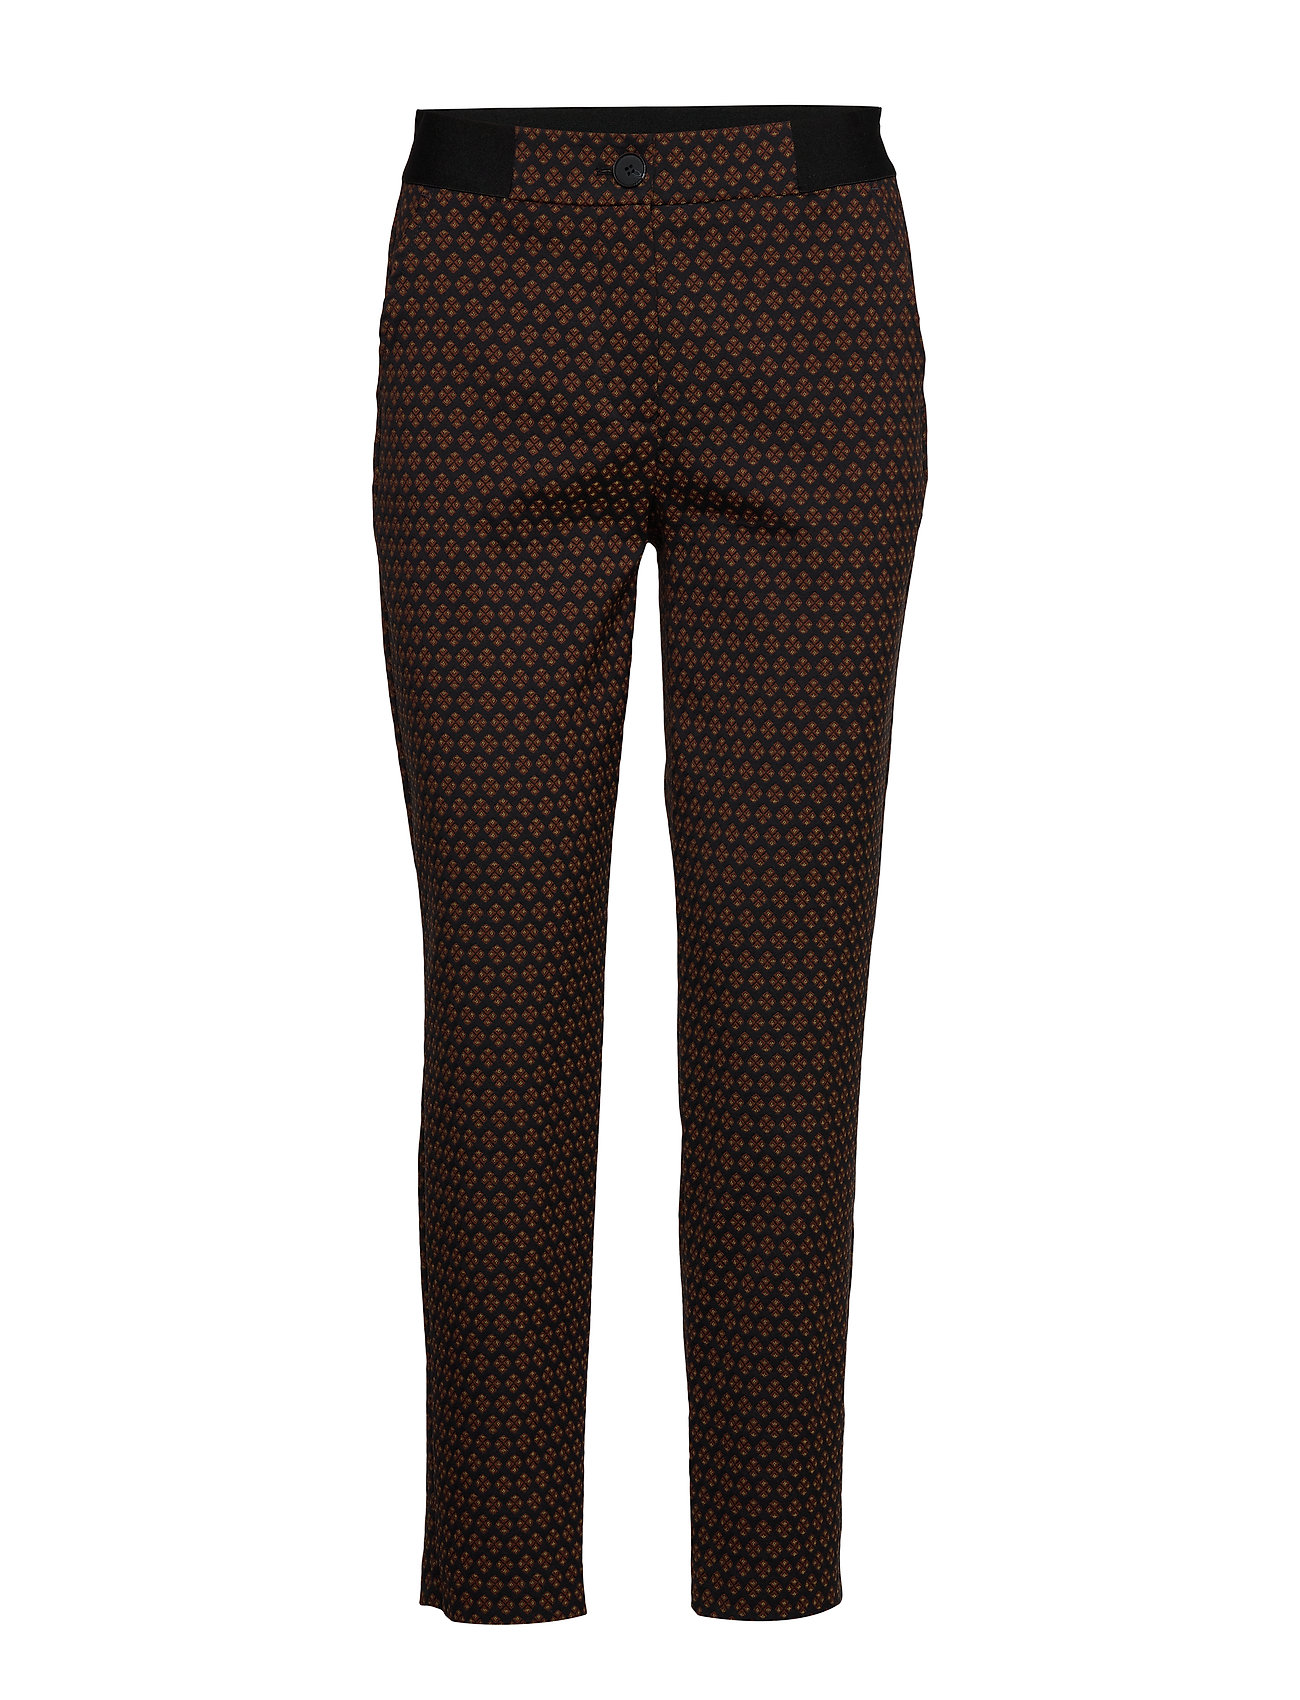 Gerry Weber CROP LEISURE TROUSER - BLACK/BROWN MULTICOLOR